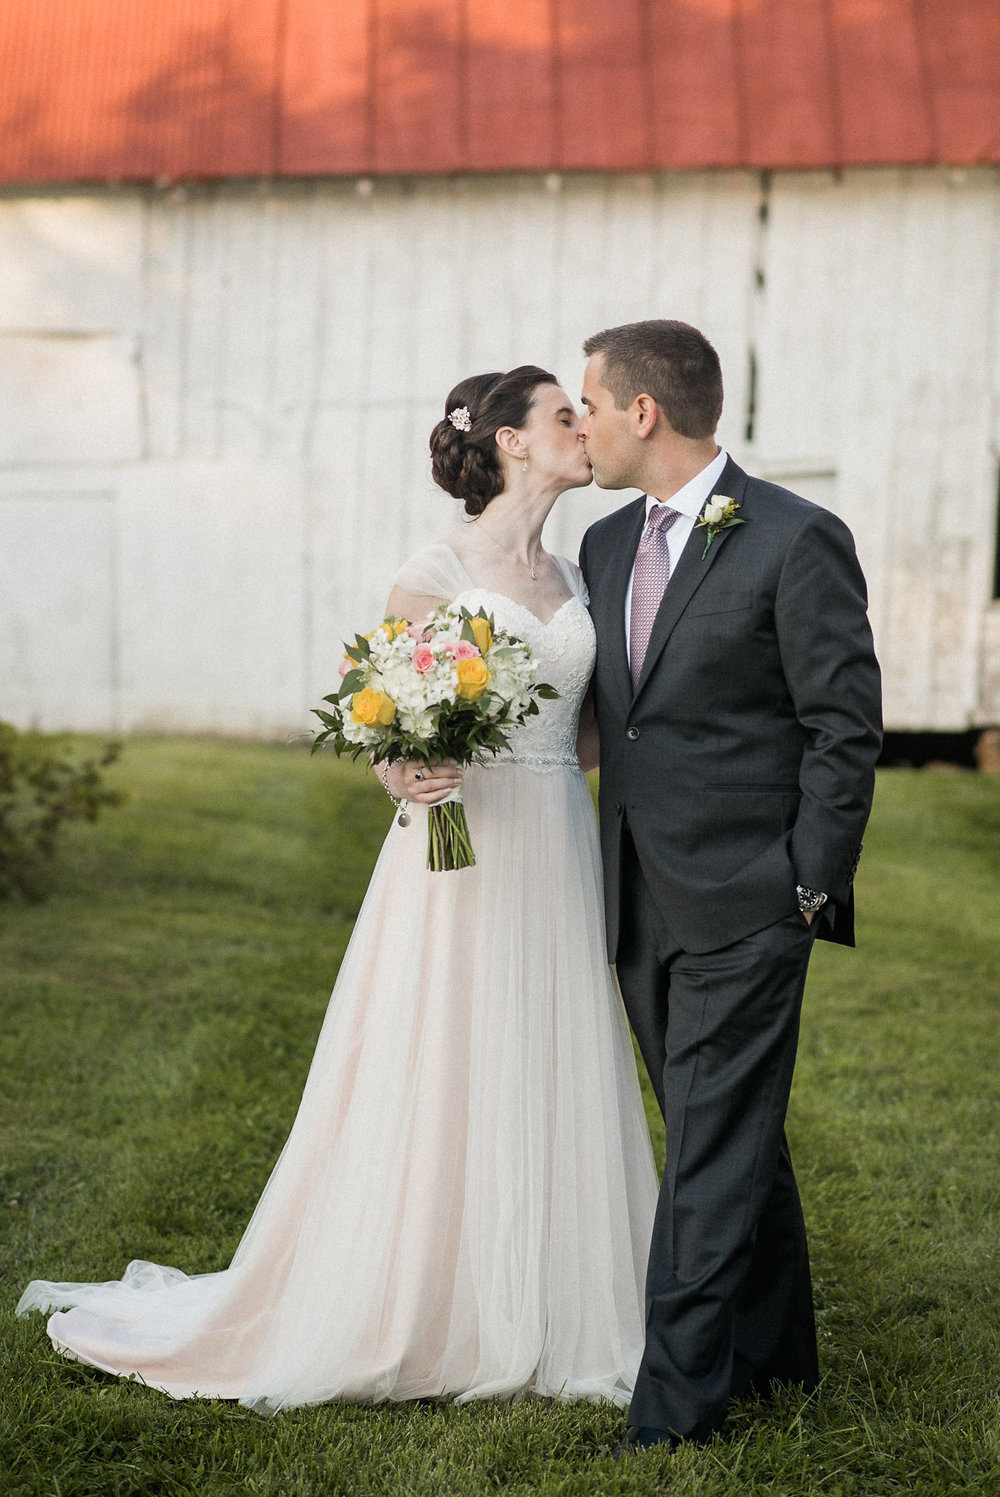 Bride and groom kiss in front of barn